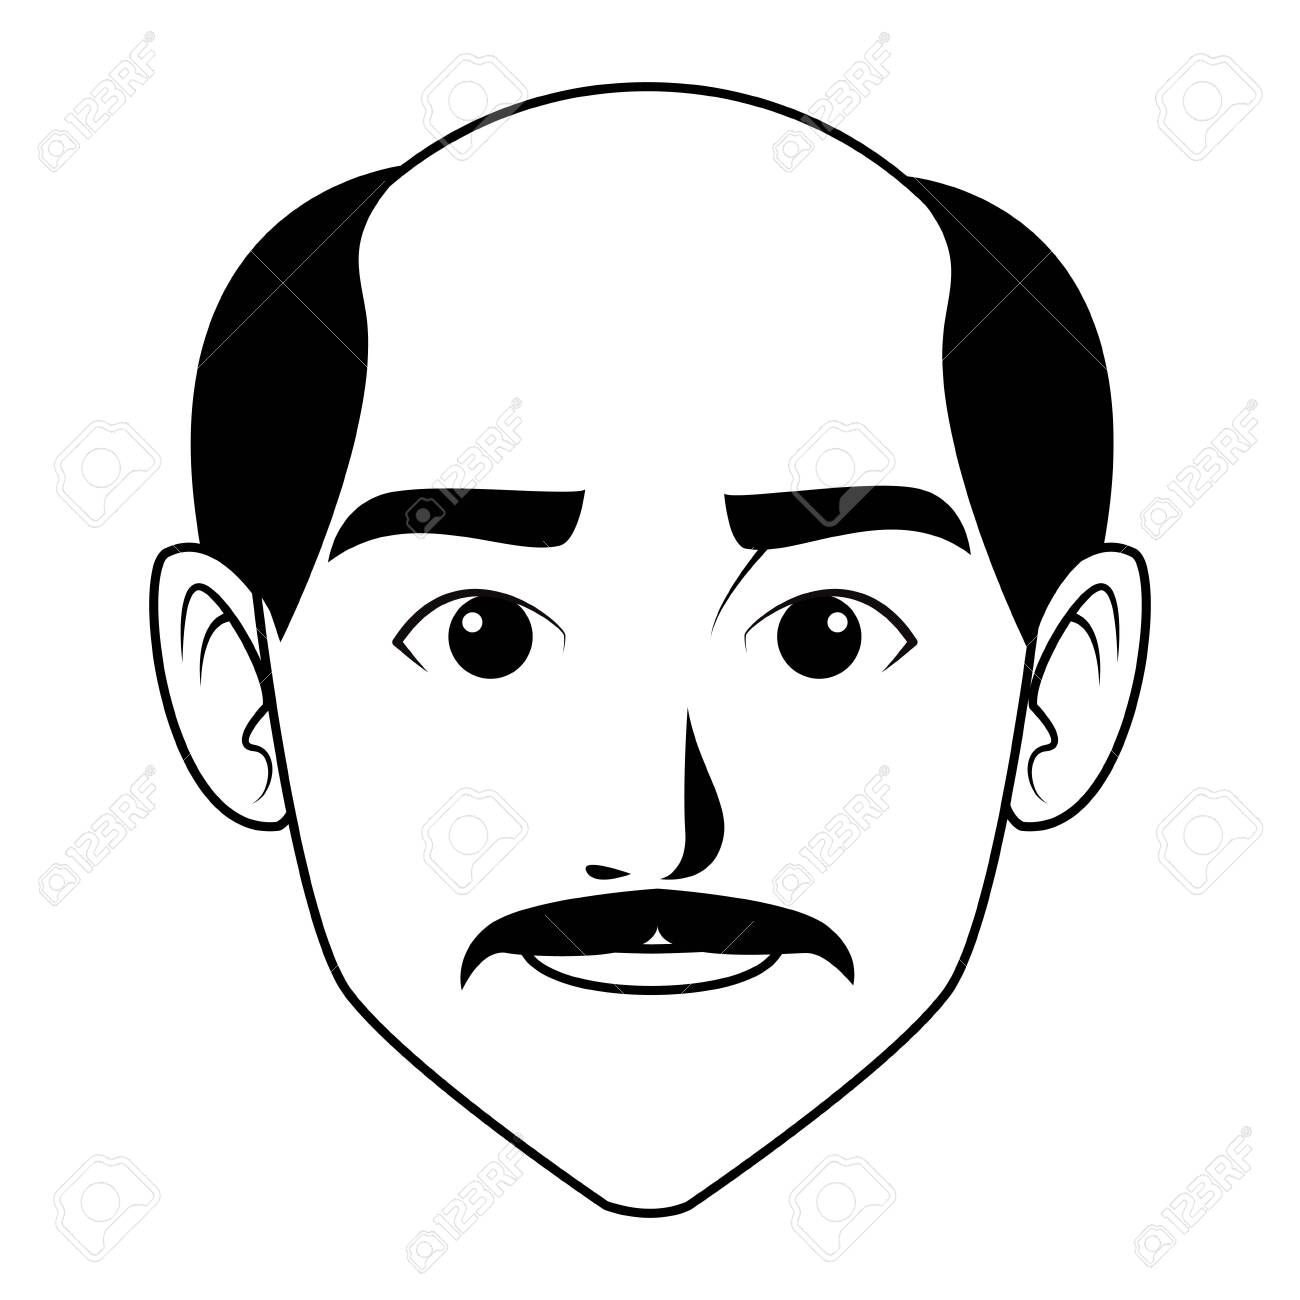 black bald cartoon character indian man face with moustache and bald profile picture avatar..